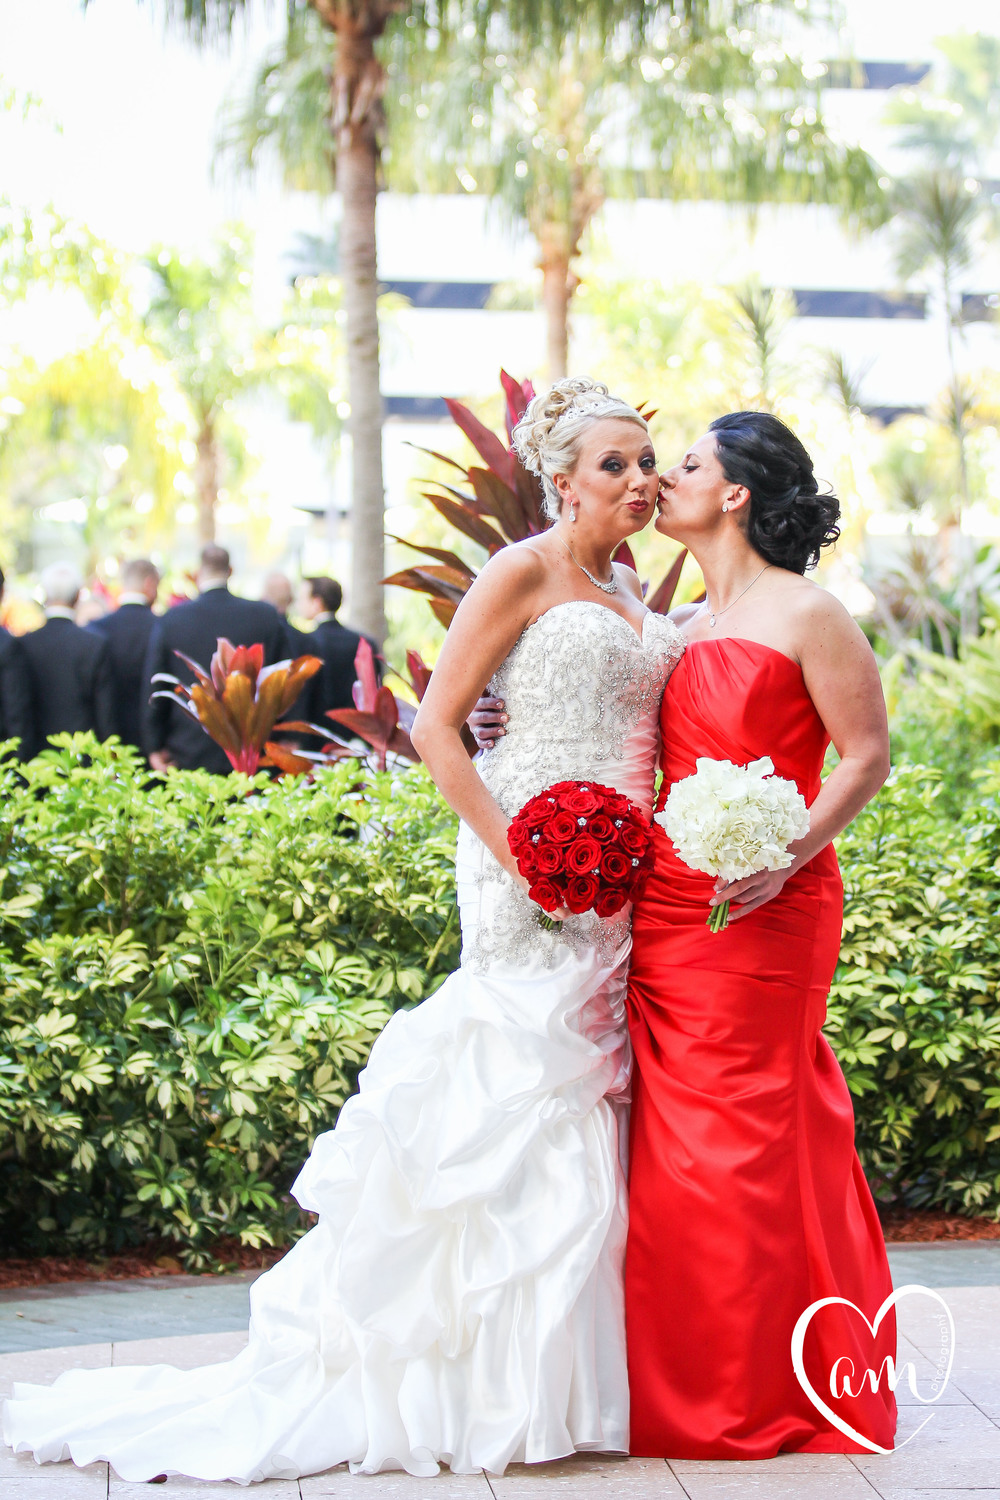 bride and bridesmaid take silly wedding formal photo